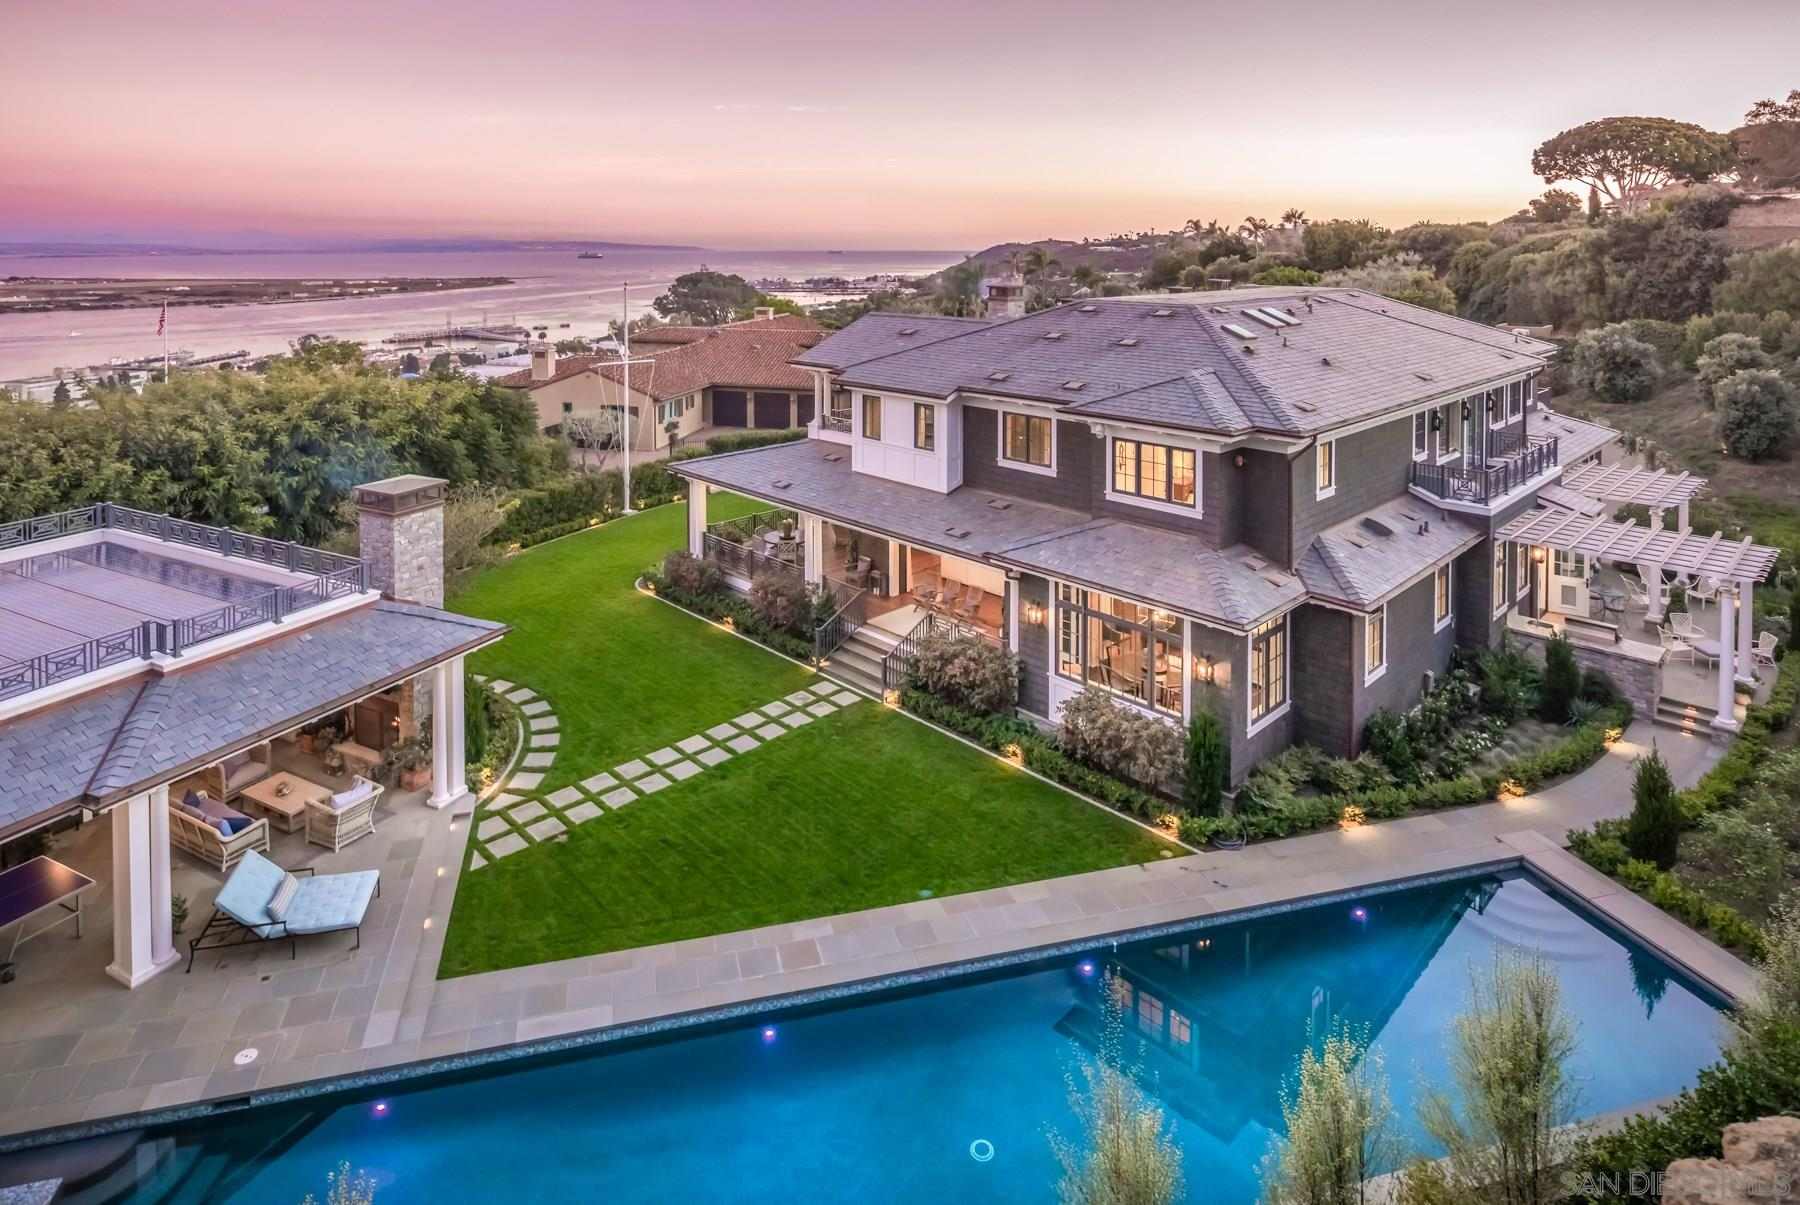 Entertaining offers b/w $13,500,000-$15,000,000. Luxury, private estate located within the exclusive, gated (12 home) community of La Playa in Point Loma. This Nantucket & Hamptons inspired home is situated on a rare almost 1 acre lot. Perfect to entertain with expansive wrap around porch complete with built-in ceiling heaters, multiple patios & decks, beautiful lawn, 75 foot lap pool & jacuzzi, 2 BBQ areas, 2 exterior wood burning fireplaces (4 interior gas fireplaces),3,000+ bottle wine cellar, detached guest house with gym & kitchenette & more. Other special amenities include private elevator, automated driveway gates & impressive 6+ car garage with turntable. This extraordinary estate was designed by Ione Stiegler & built by Steigerwald-Dougherty. The home features stunning walnut floors throughout, slate roof with copper gutters, solar, back-up generator, total home water filtration system, Lutron lighting system, Crestron total home entertainment system, cameras, security system, 2 exterior fountains, custom exterior light fixtures & more!  Impeccably designed, the home's main level offers 1 bedroom, an office, stunning kitchen with La Cornue double ovens, elegant dining room, 2 powder bathrooms featuring gorgeous marble throughout, chef's dream butler's pantry, mud room, living room with bar & family room with disappearing glass doors. The 2nd level offers the master retreat, 3 en-suite bedrooms + optional 4th bed/bath which is currently a movie theater. The detached guest house offers a gym, 2 full bathrooms, 1 bedroom & a kitchenette! Prepared to be amazed. Every detail from floor to ceiling will take your breath away!